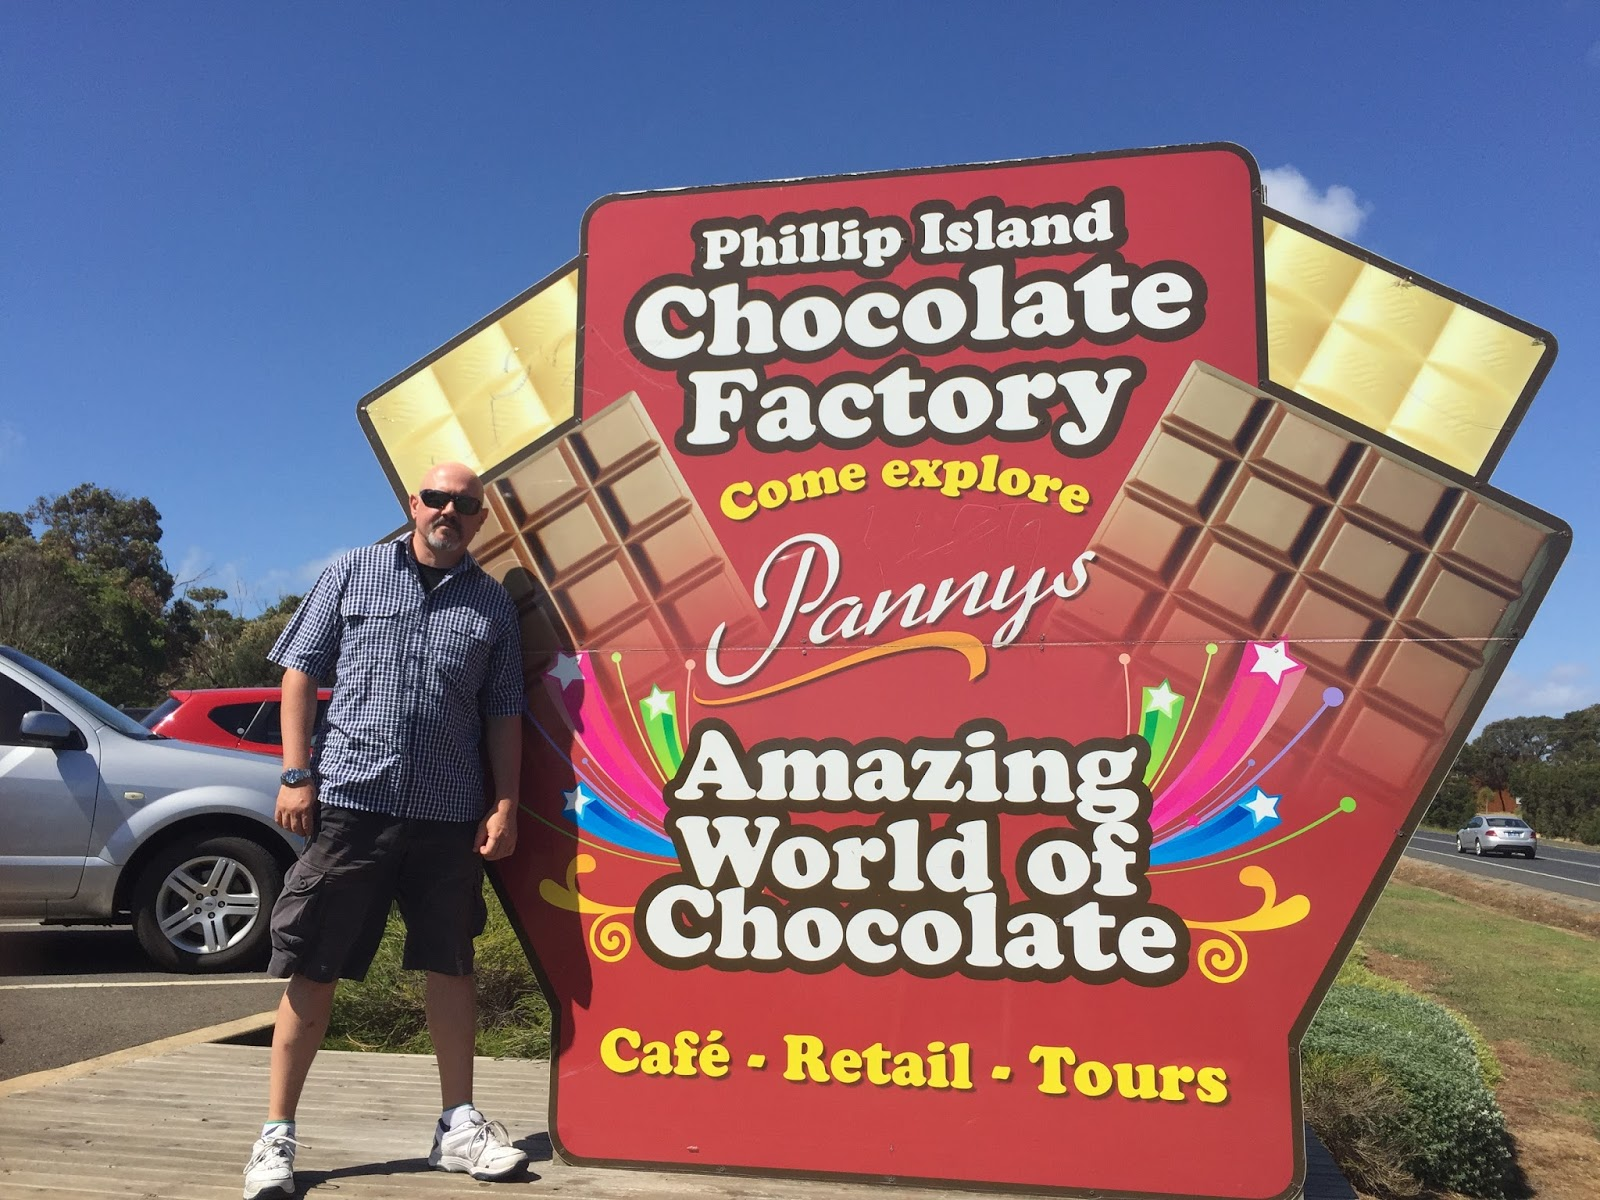 the bald critic pannys amazing world of chocolate 930. Black Bedroom Furniture Sets. Home Design Ideas